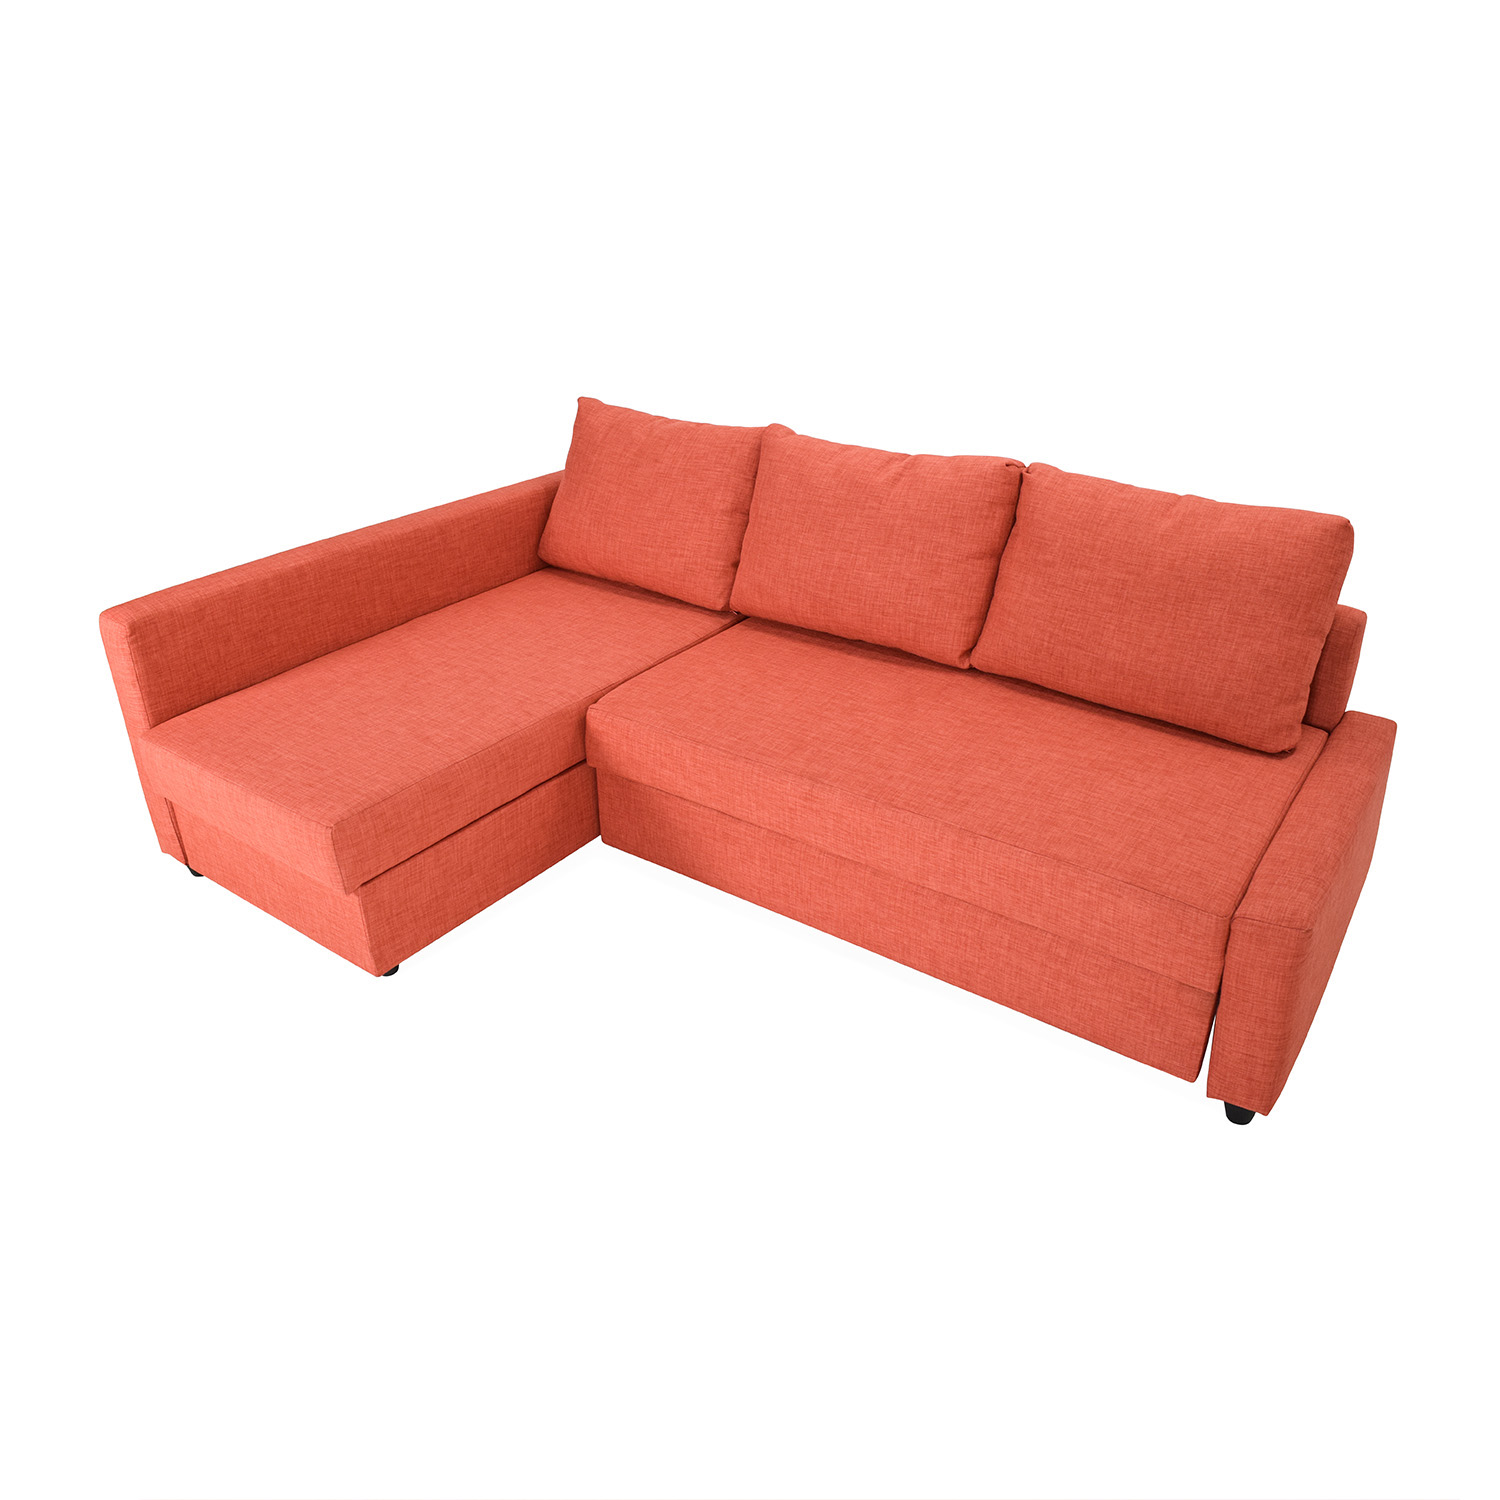 Sofa Bed Ebay Sydney: Sofa Bed Used Sofa Bed Used 74 With Jinanhongyu